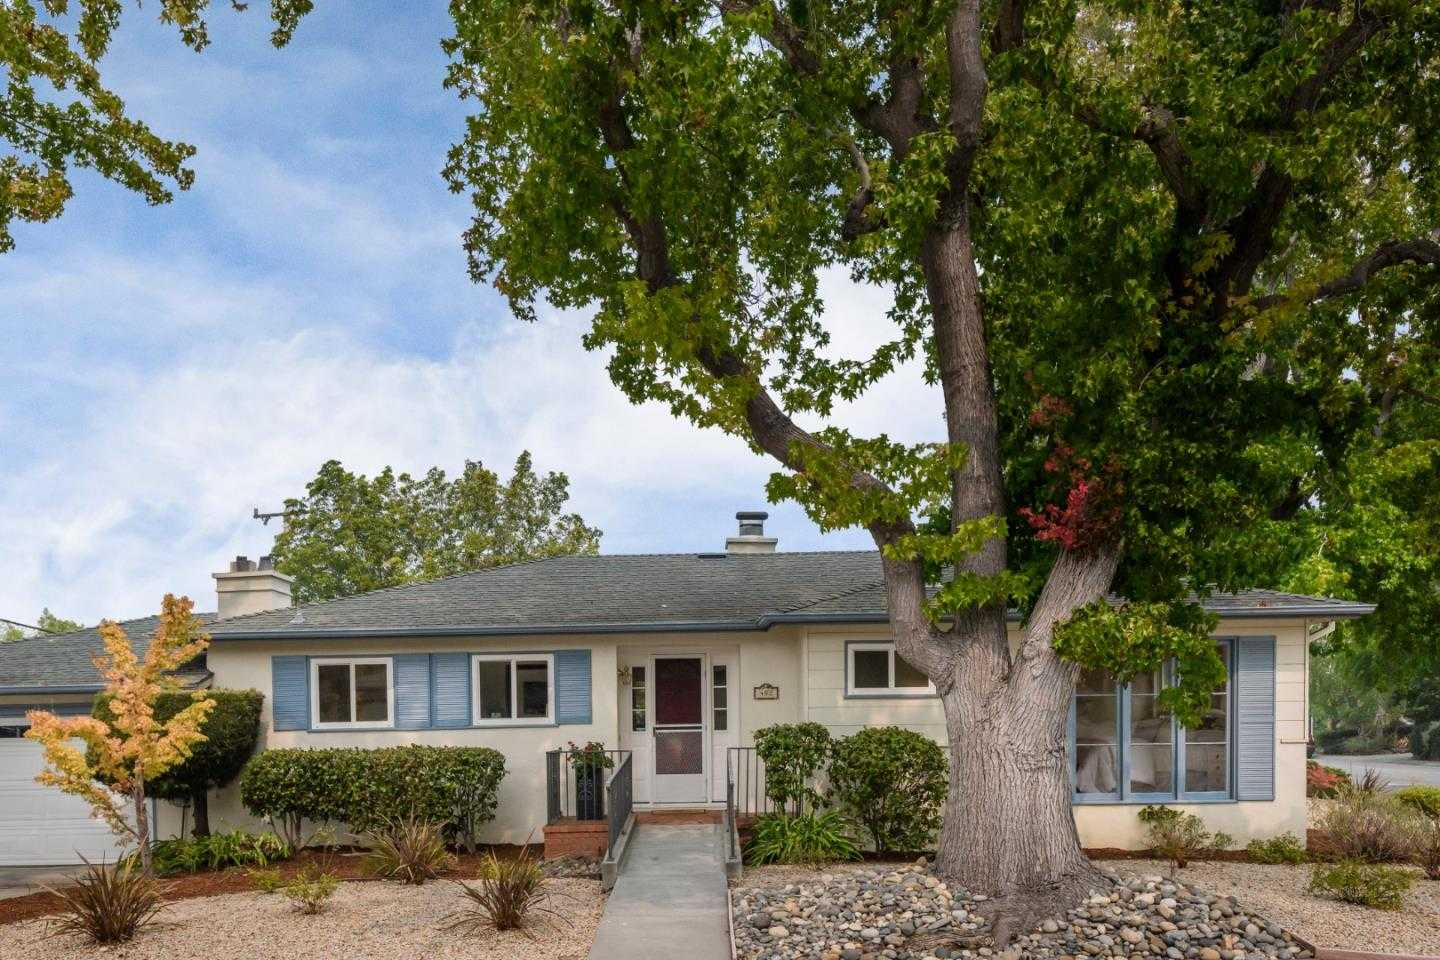 $1,588,000 - 3Br/2Ba -  for Sale in San Mateo